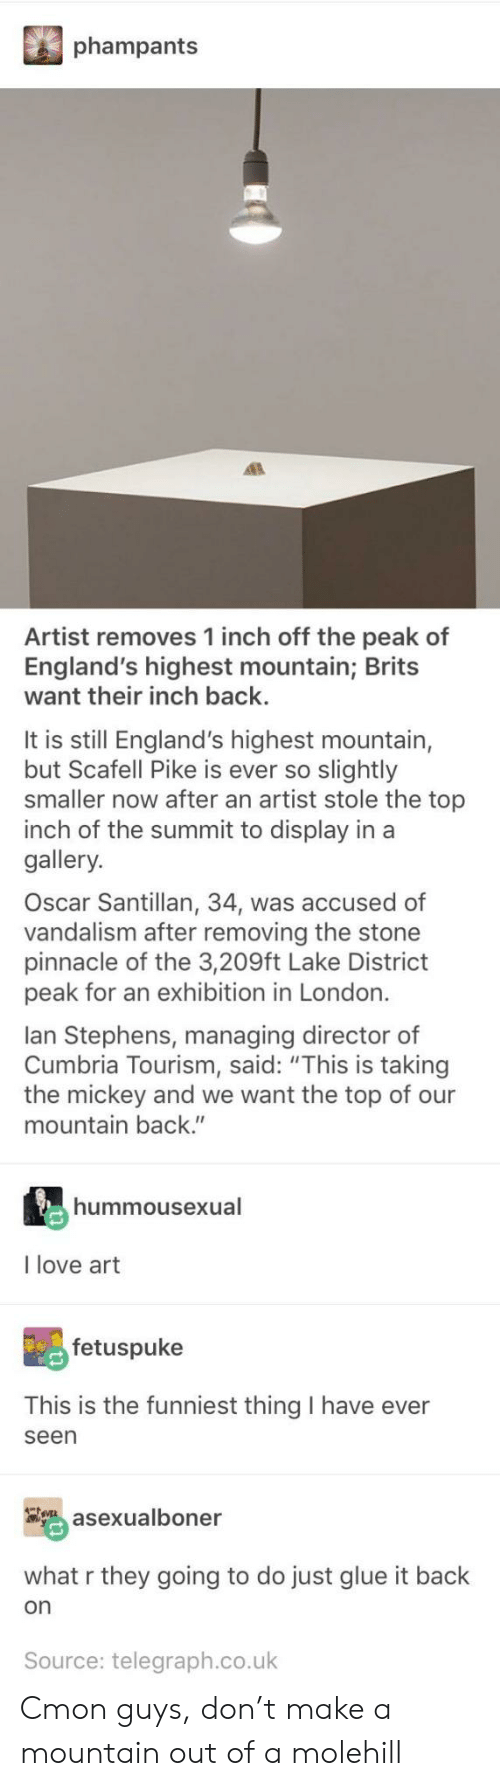 "Taking The Mickey: phampants  Artist removes 1 inch off the peak of  England's highest mountain; Brits  want their inch back.  It is still England's highest mountain,  but Scafell Pike is ever so slightly  smaller now after an artist stole the top  inch of the summit to display in a  gallery.  Oscar Santillan, 34, was accused of  vandalism after removing the stone  pinnacle of the 3,209ft Lake District  peak for an exhibition in London.  lan Stephens, managing director of  Cumbria Tourism, said: ""This is taking  the mickey and we want the top of our  mountain back.""  hummousexual  I love art  fetuspuke  This is the funniest thing I have ever  seen  asexualboner  what r they going to do just glue it back  on  Source: telegraph.co.uk Cmon guys, don't make a mountain out of a molehill"